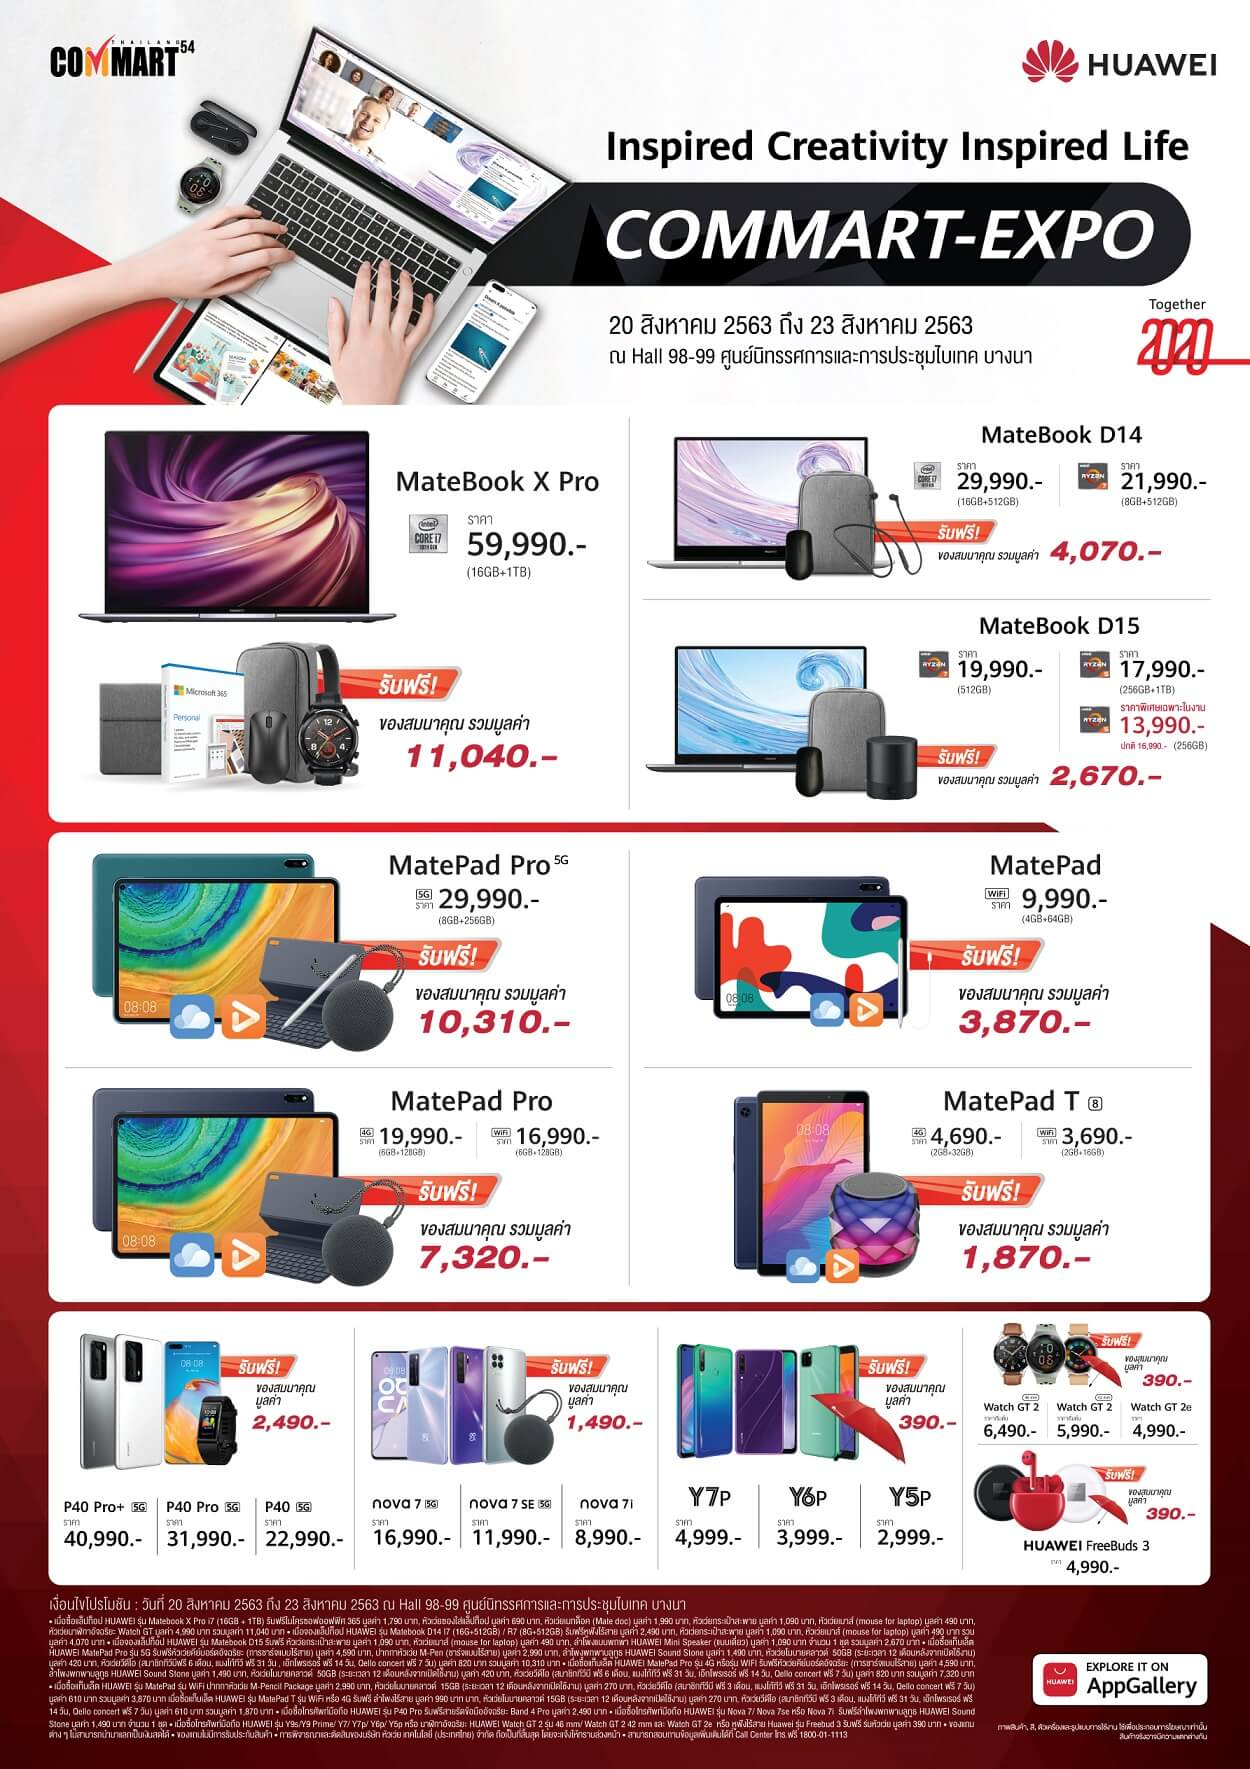 HUAWEI โปรโมชั่น COMMART-EXPO 2020